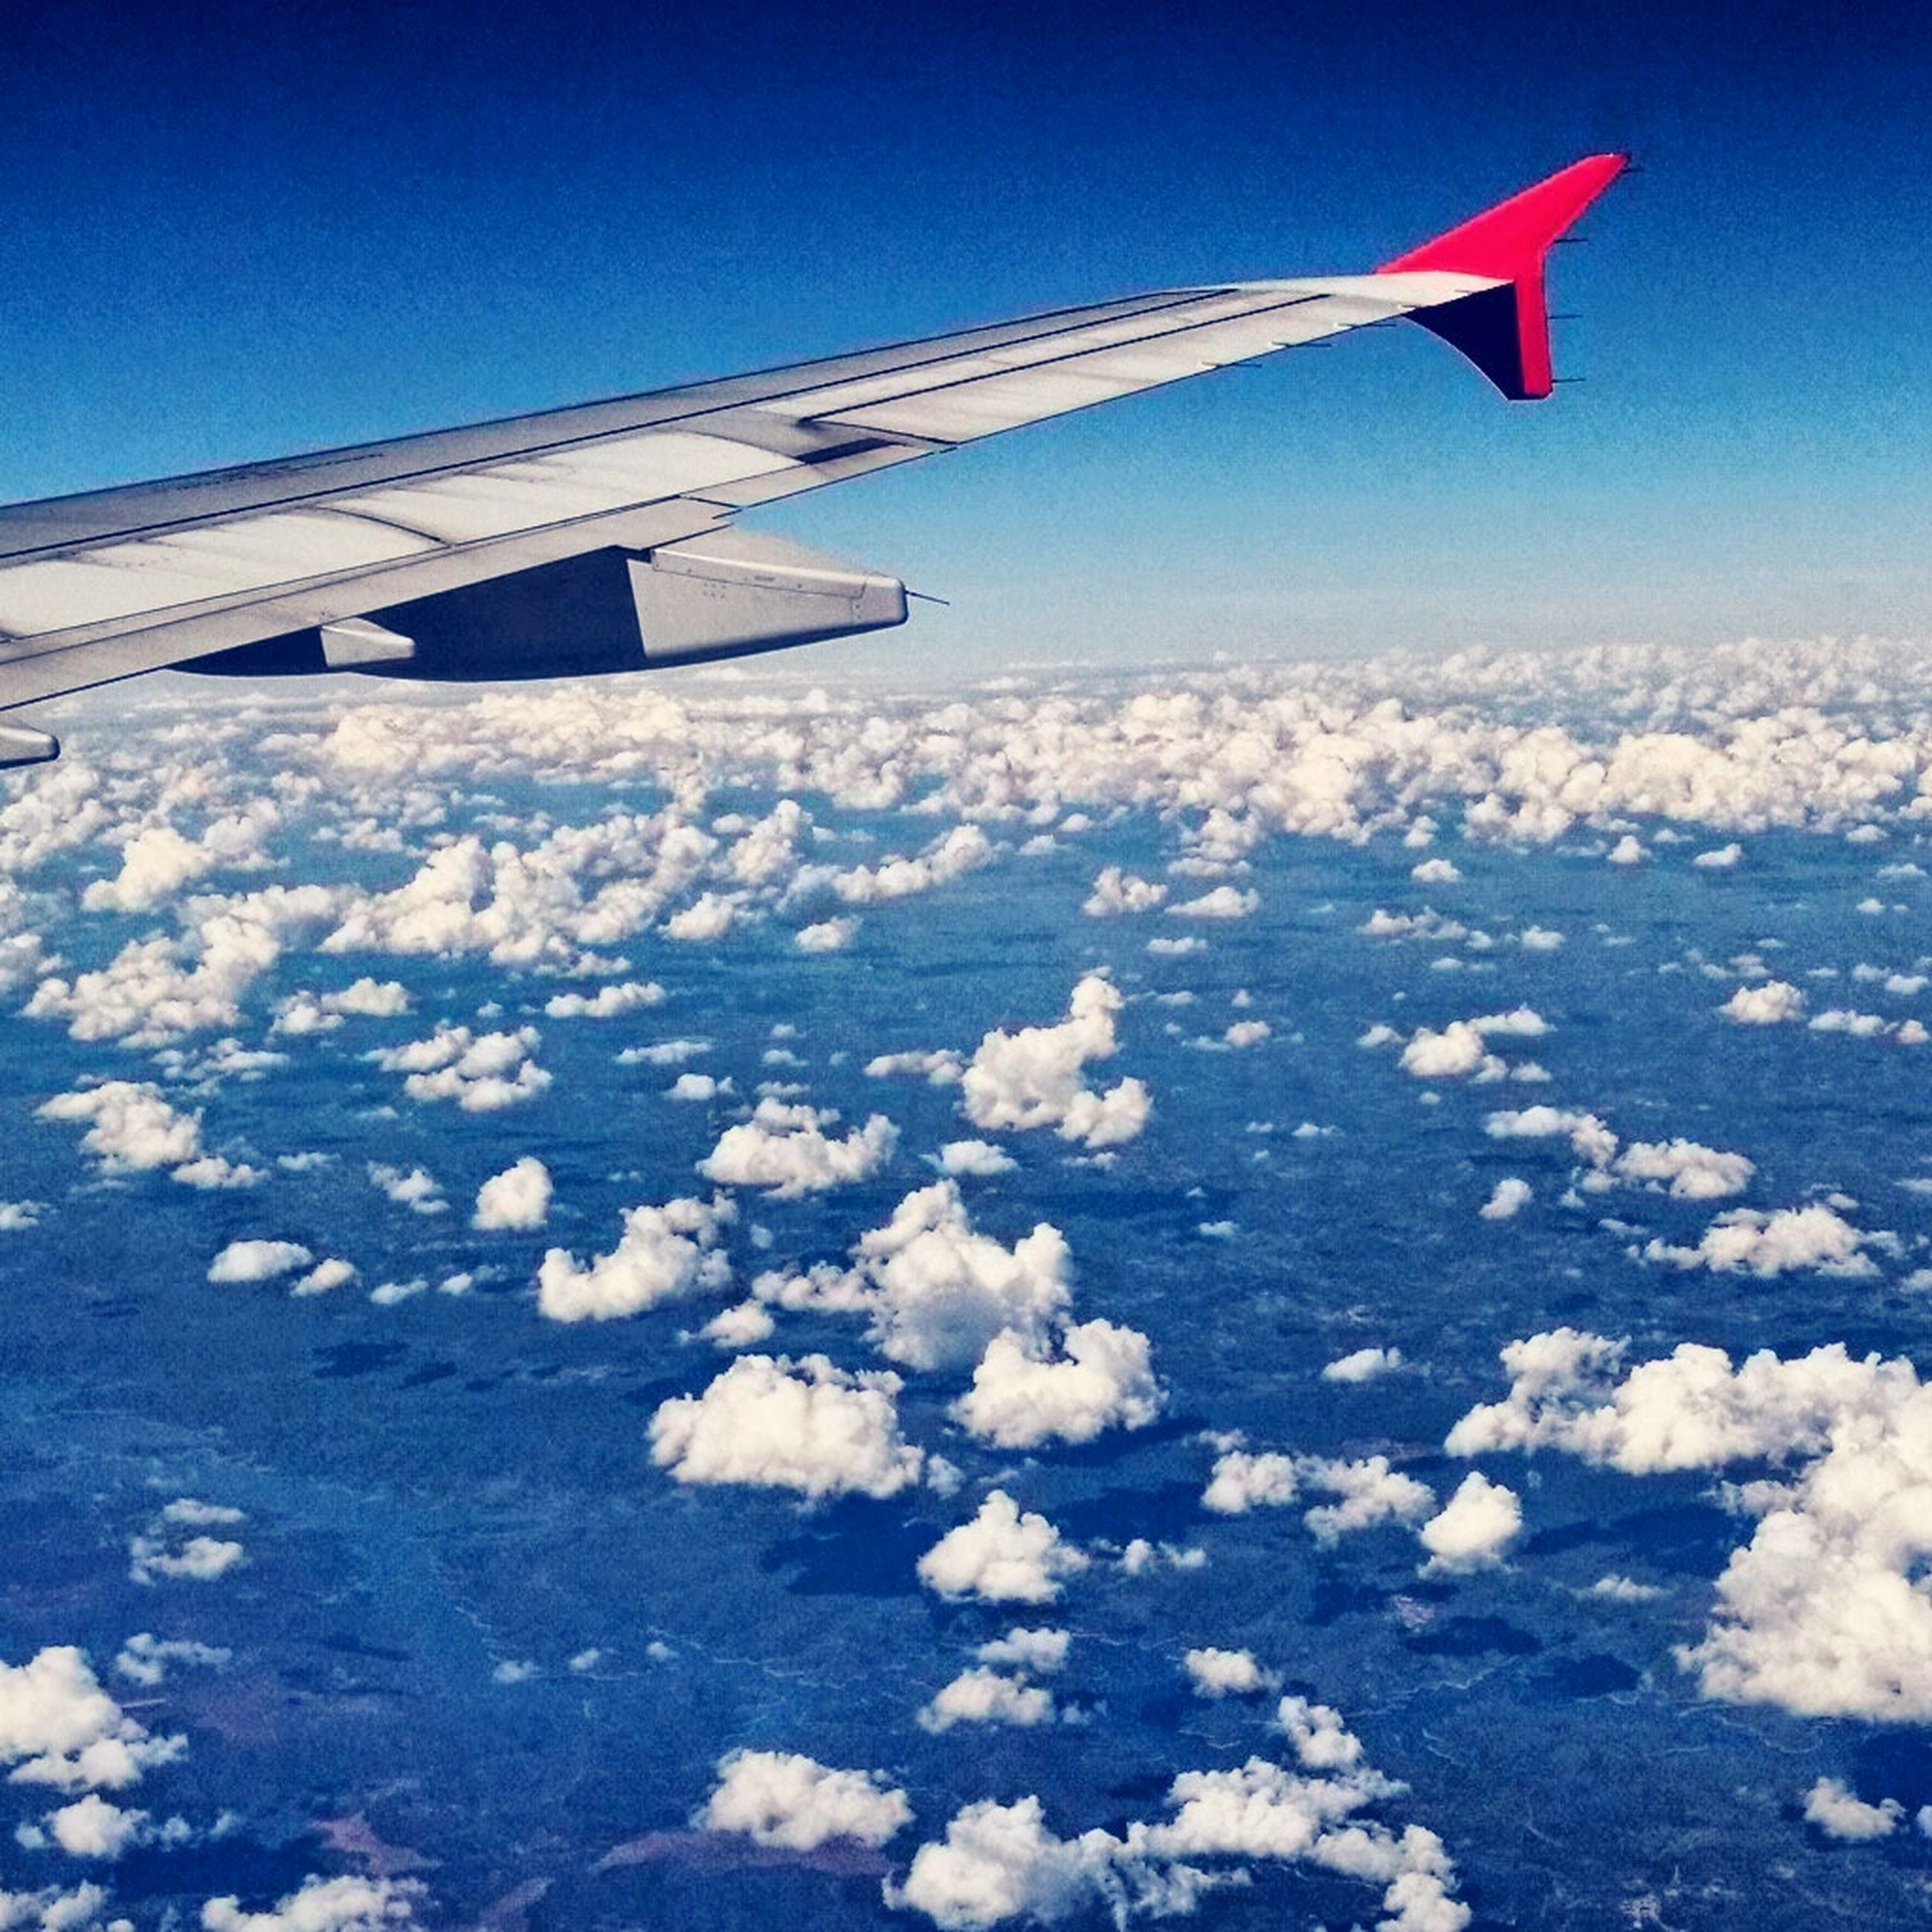 flying, aircraft wing, airplane, air vehicle, transportation, blue, mode of transport, mid-air, landscape, sky, travel, part of, journey, cropped, nature, aerial view, scenics, white color, beauty in nature, on the move